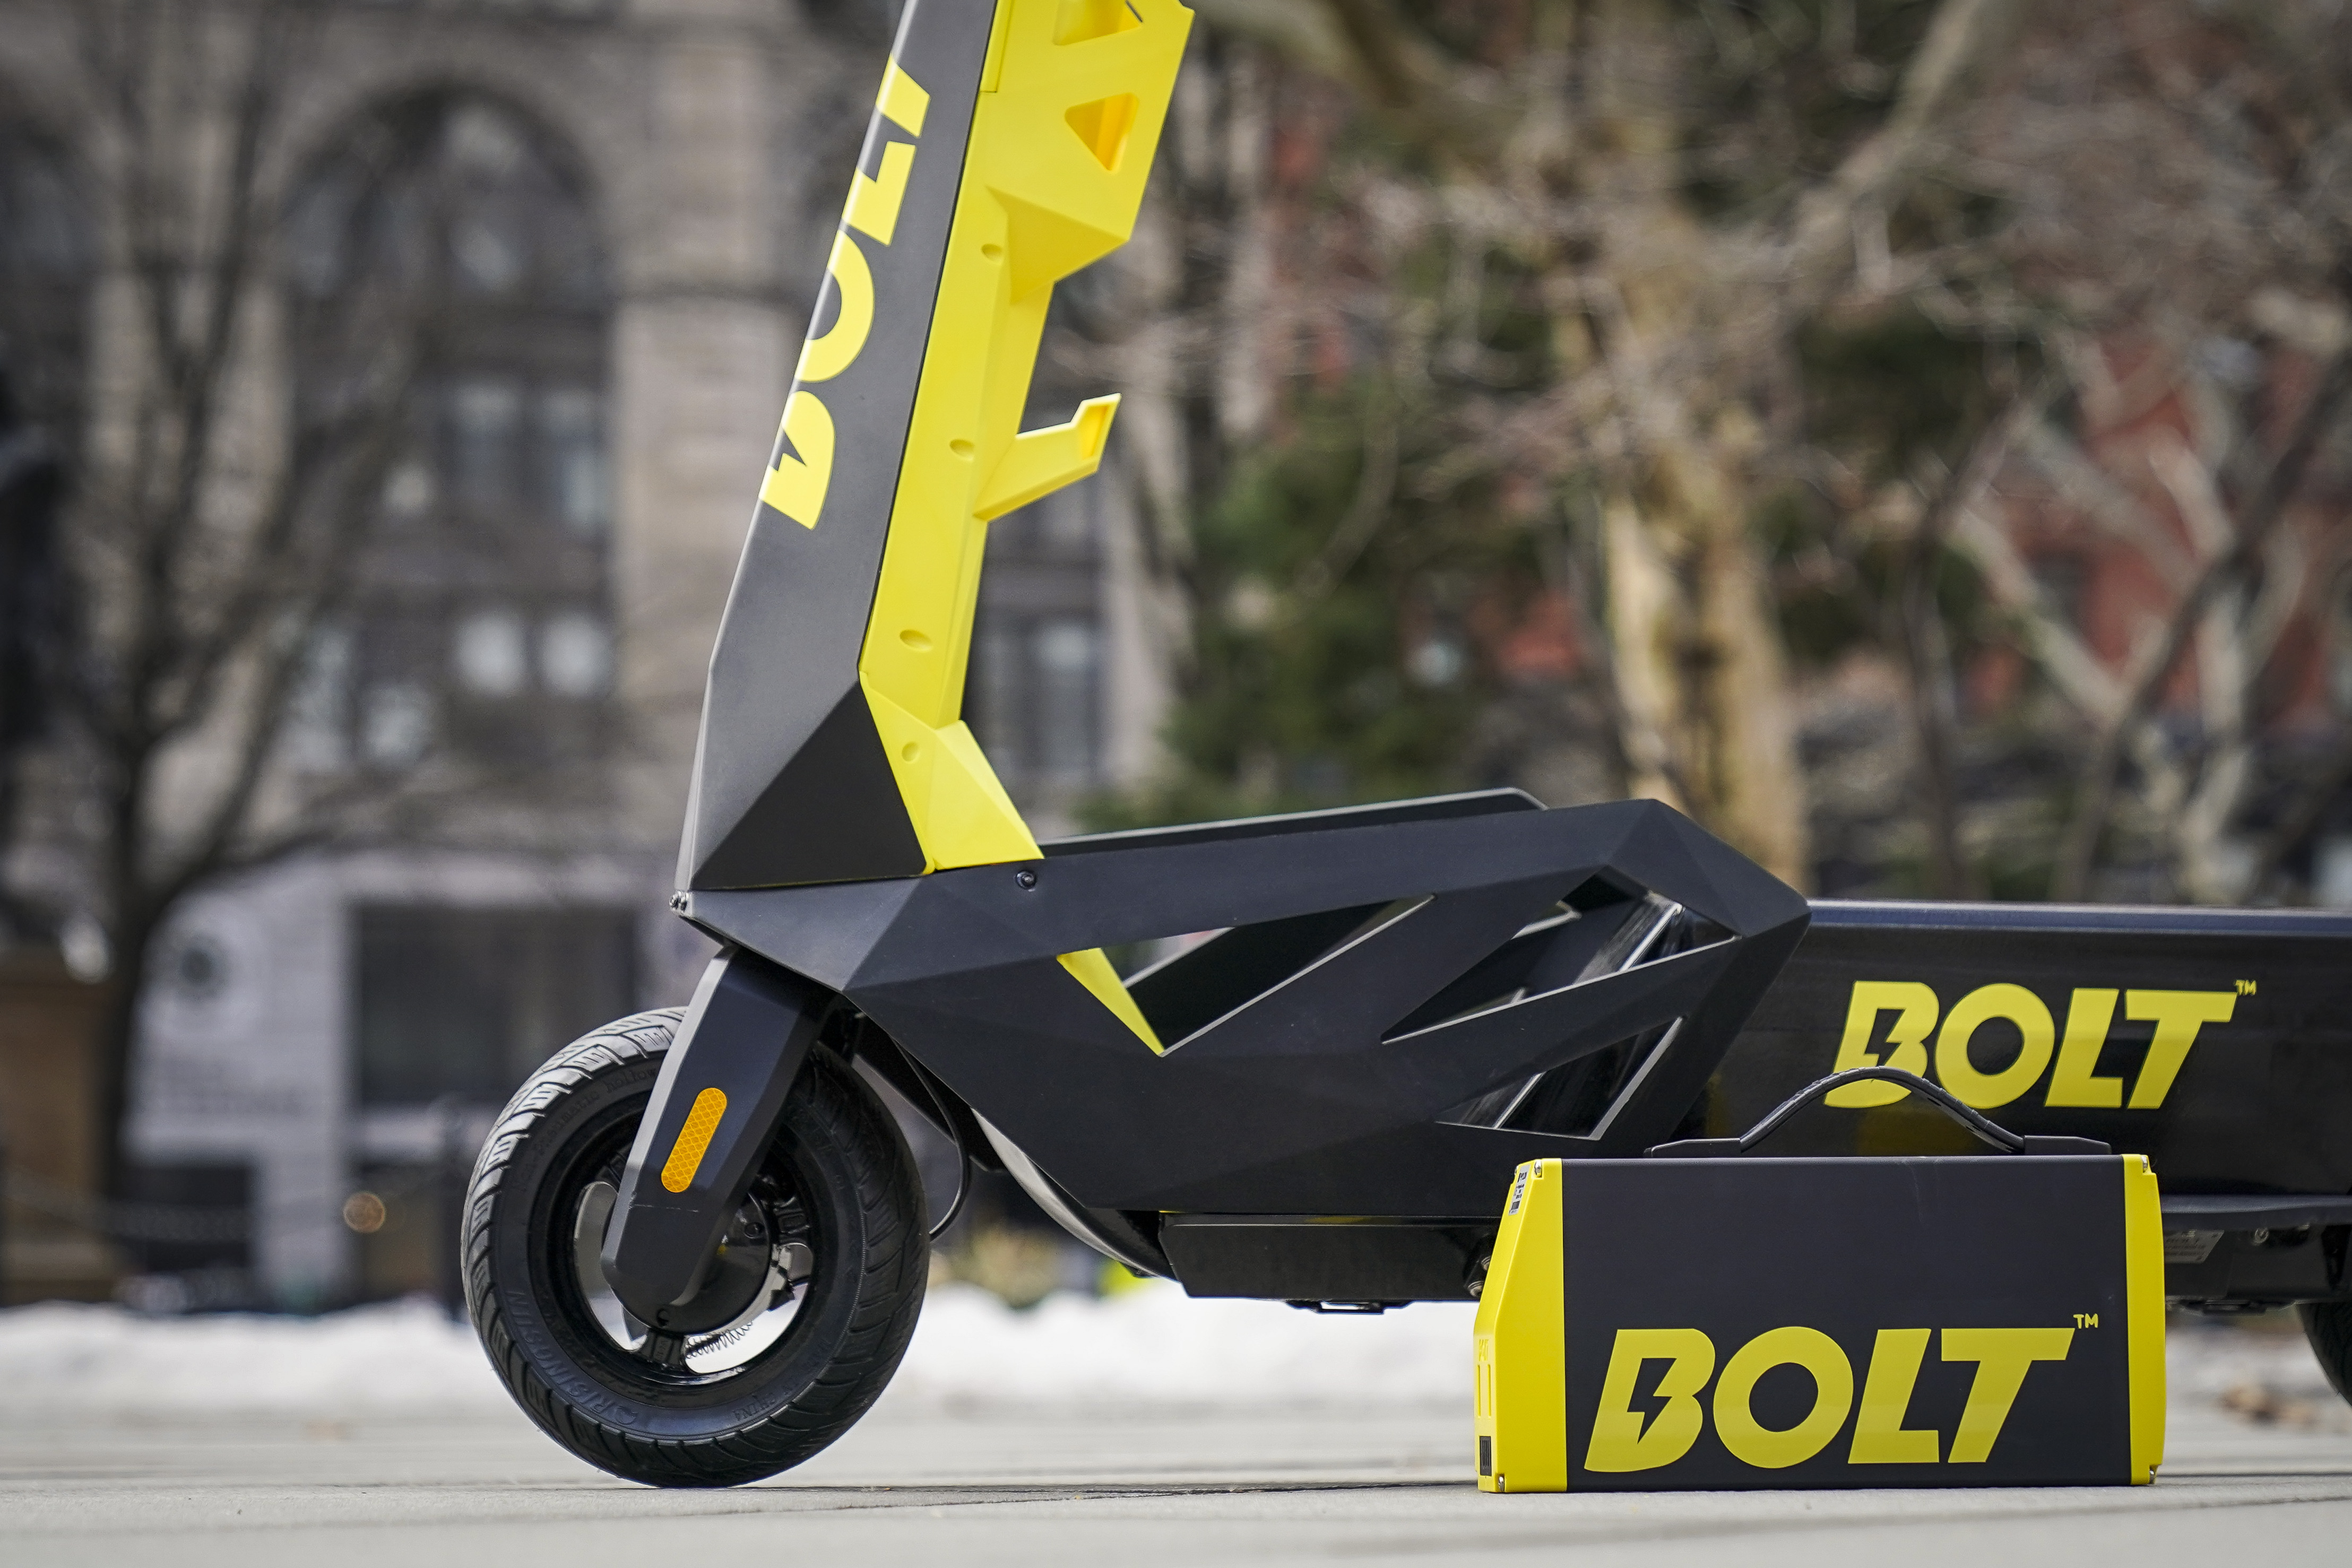 D.C. permits electric scooters from company co-founded by former Olympic athlete